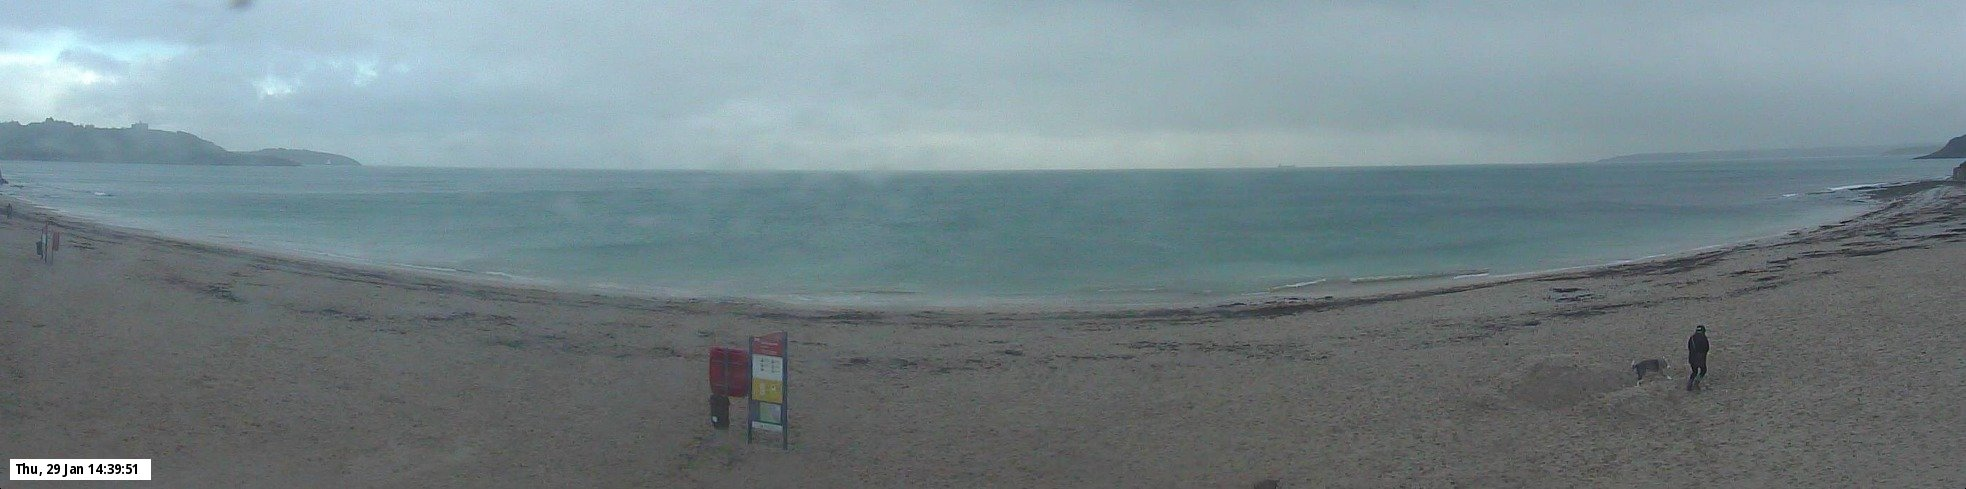 Latest webcam still for Falmouth